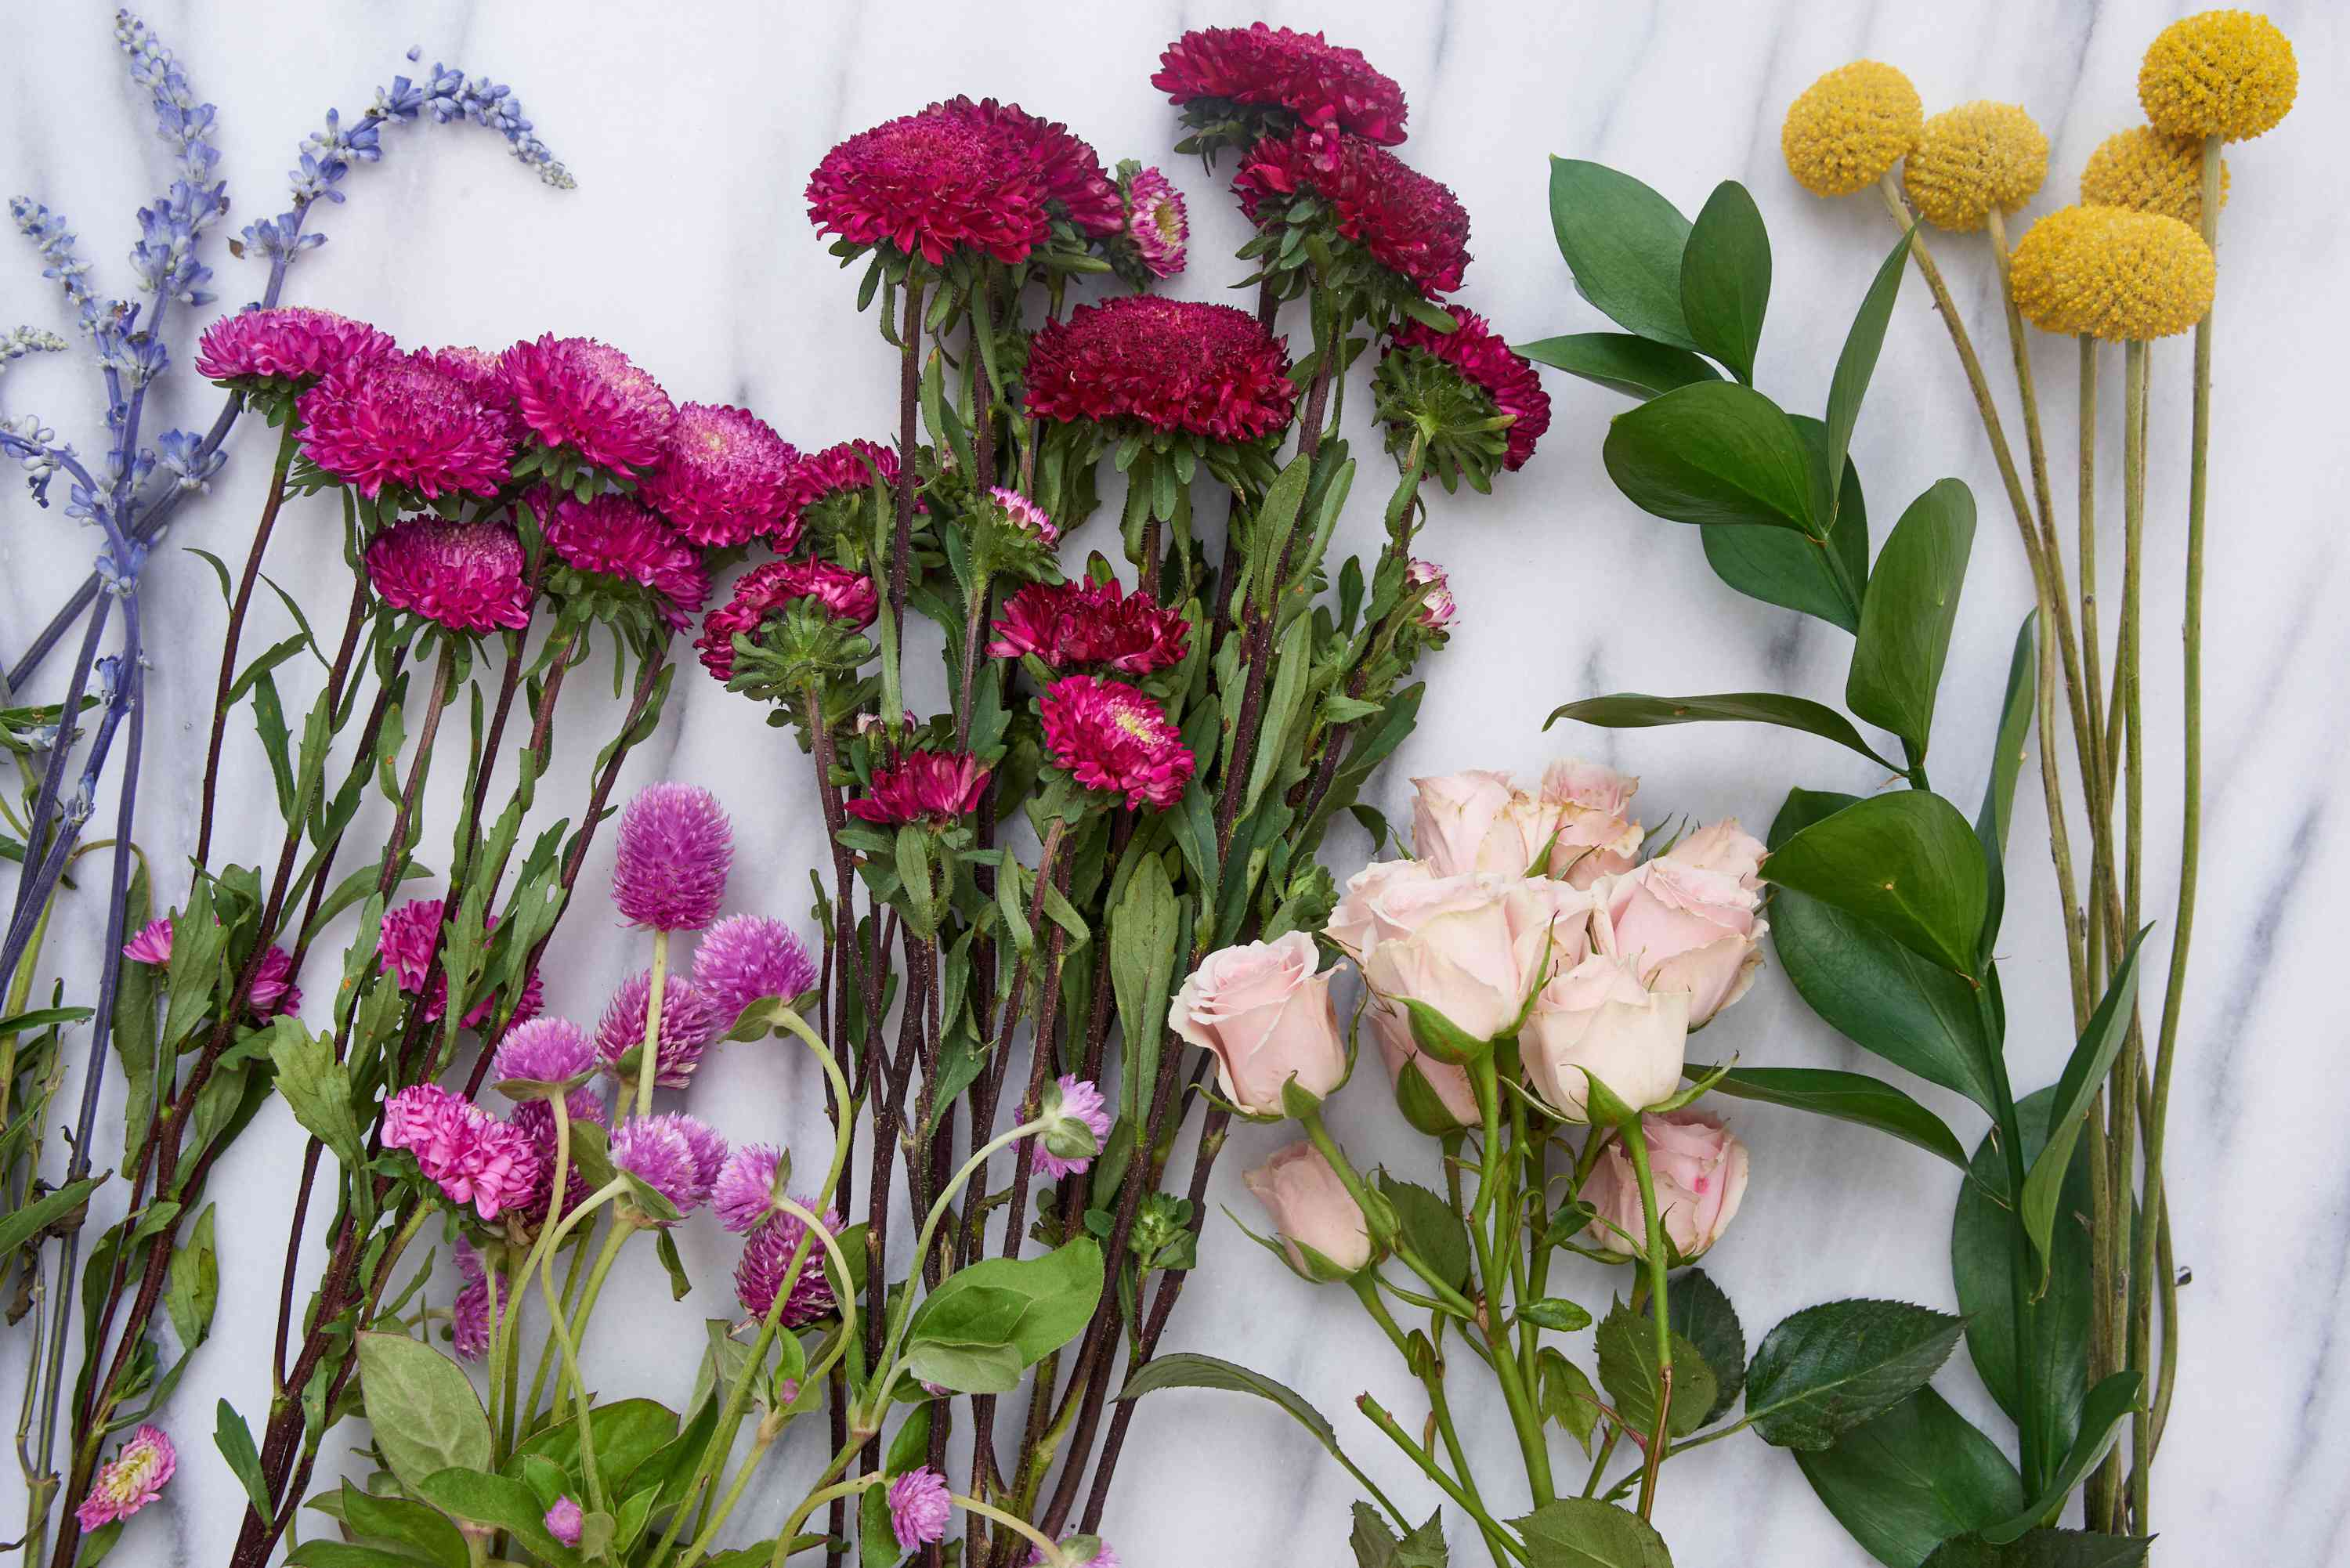 selecting which flowers to dry